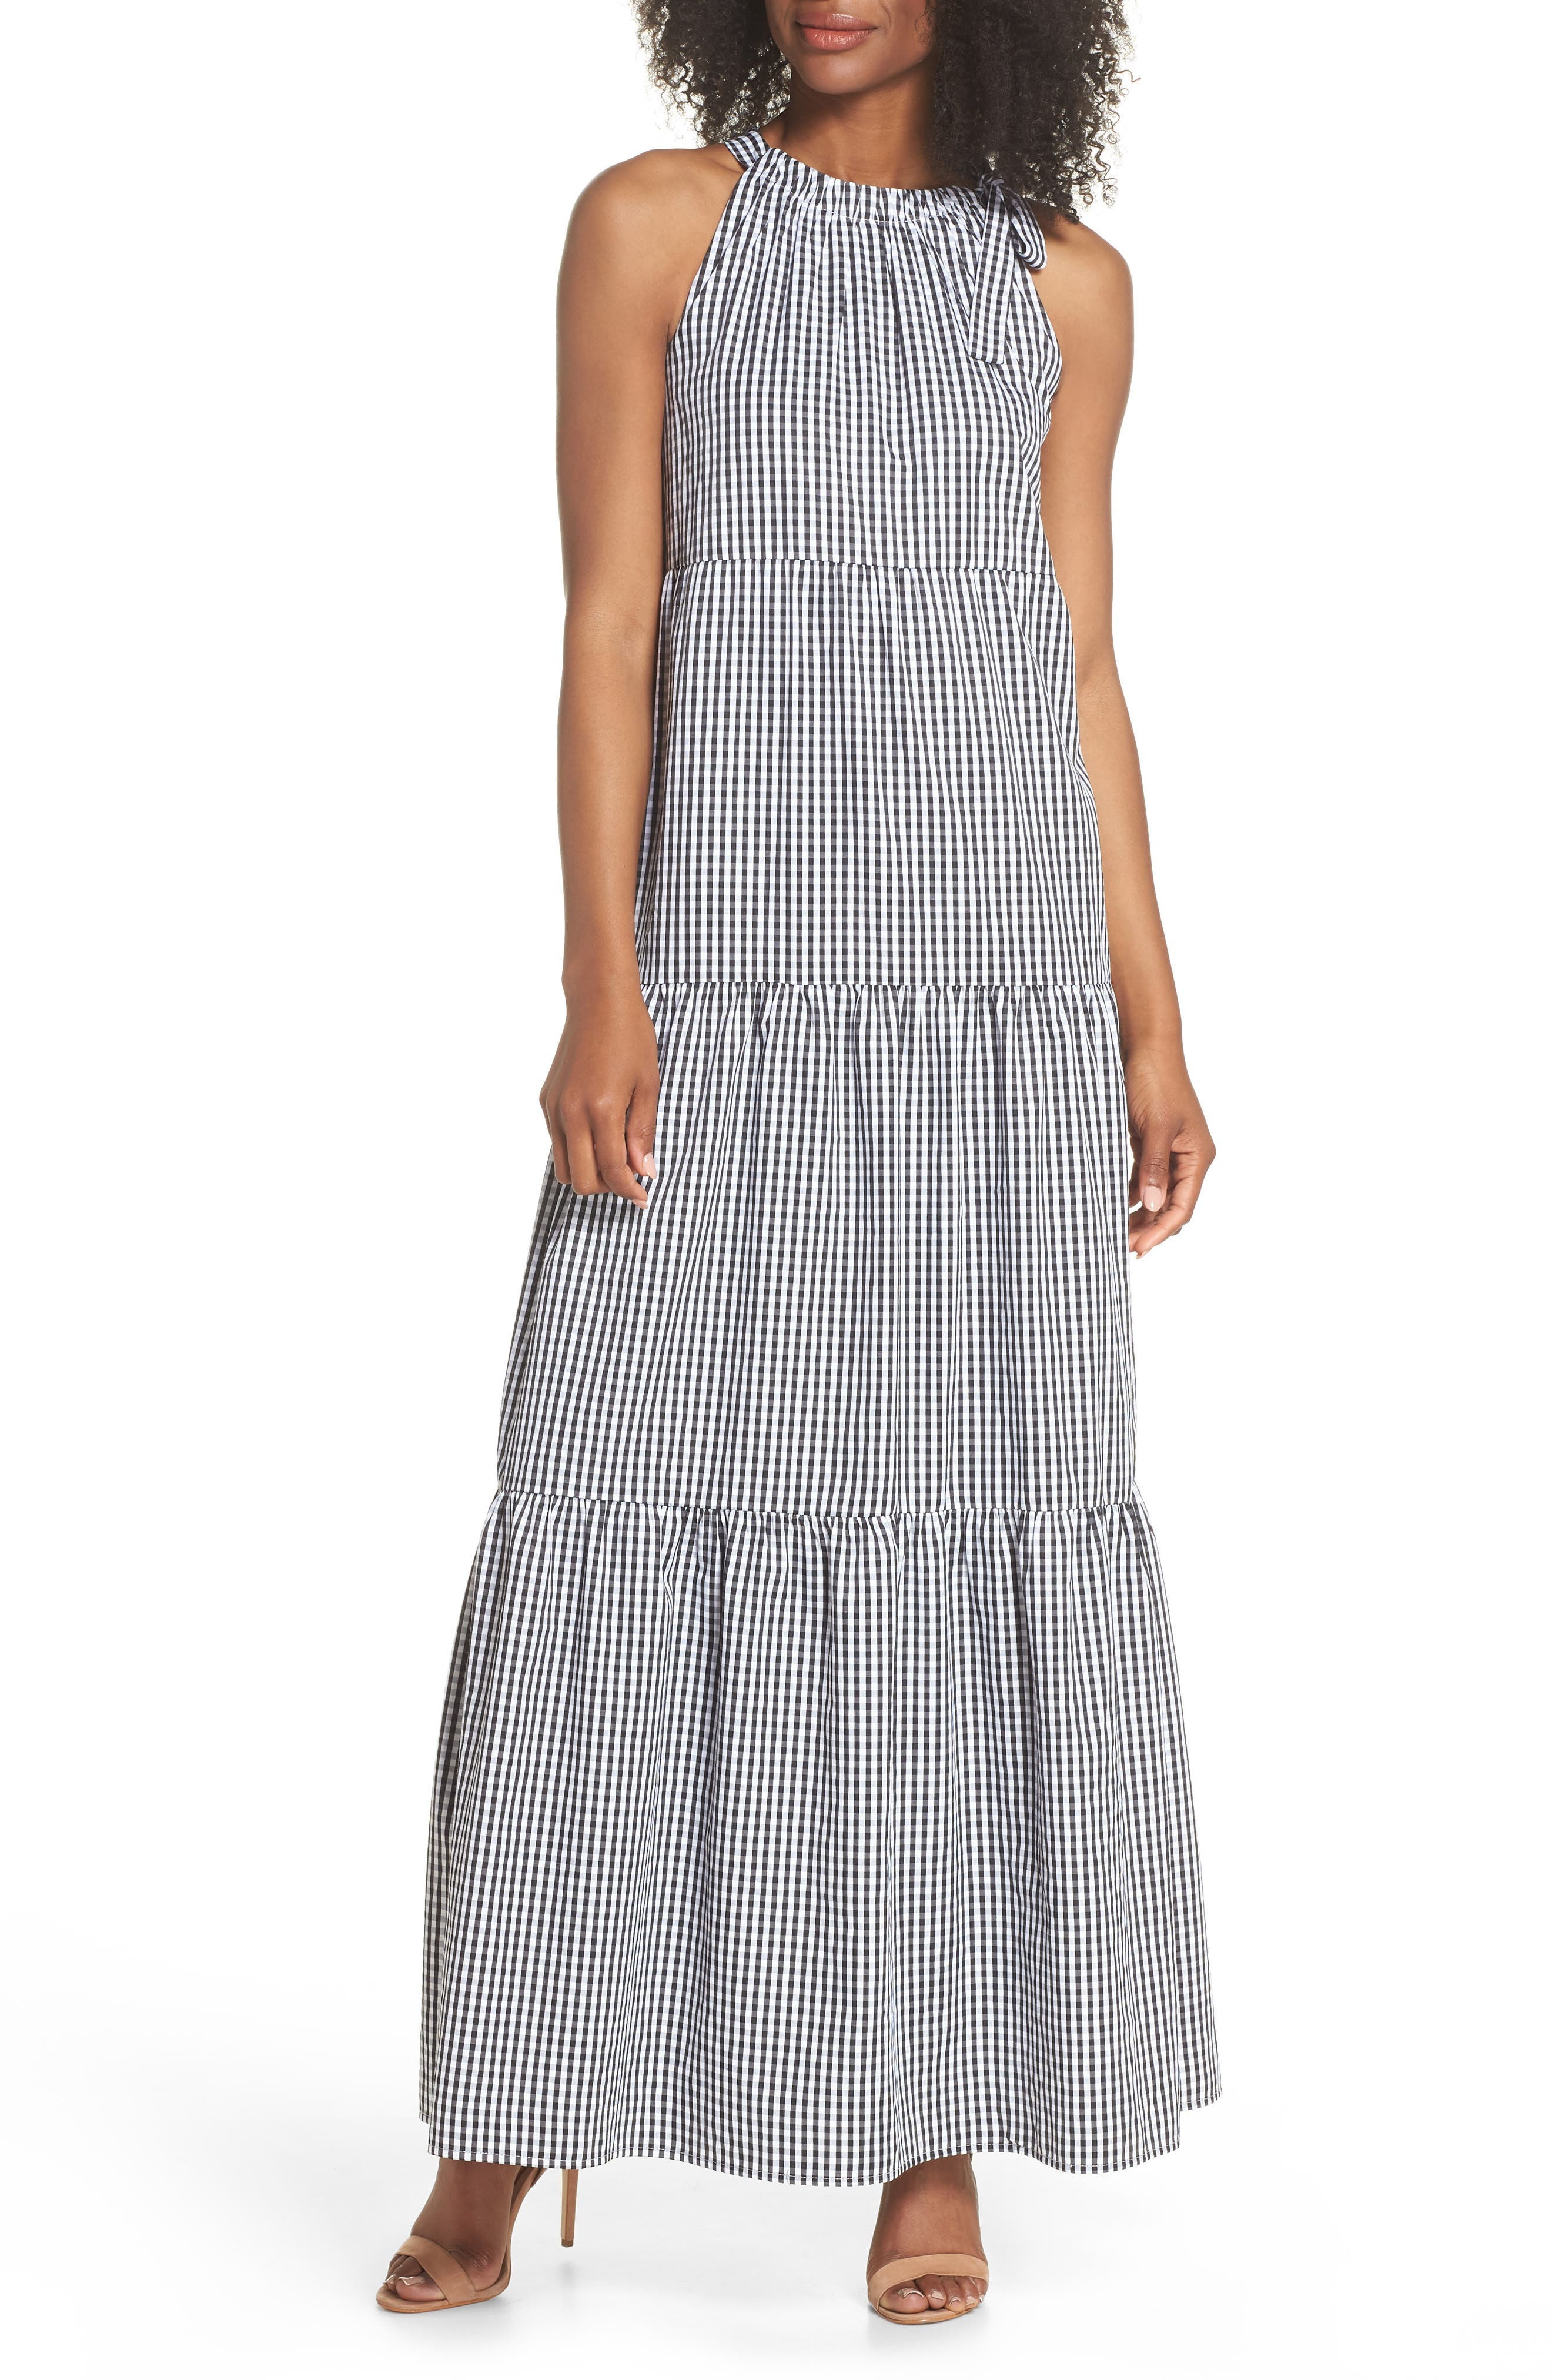 Maggy London Gingham Check Maxi Dress